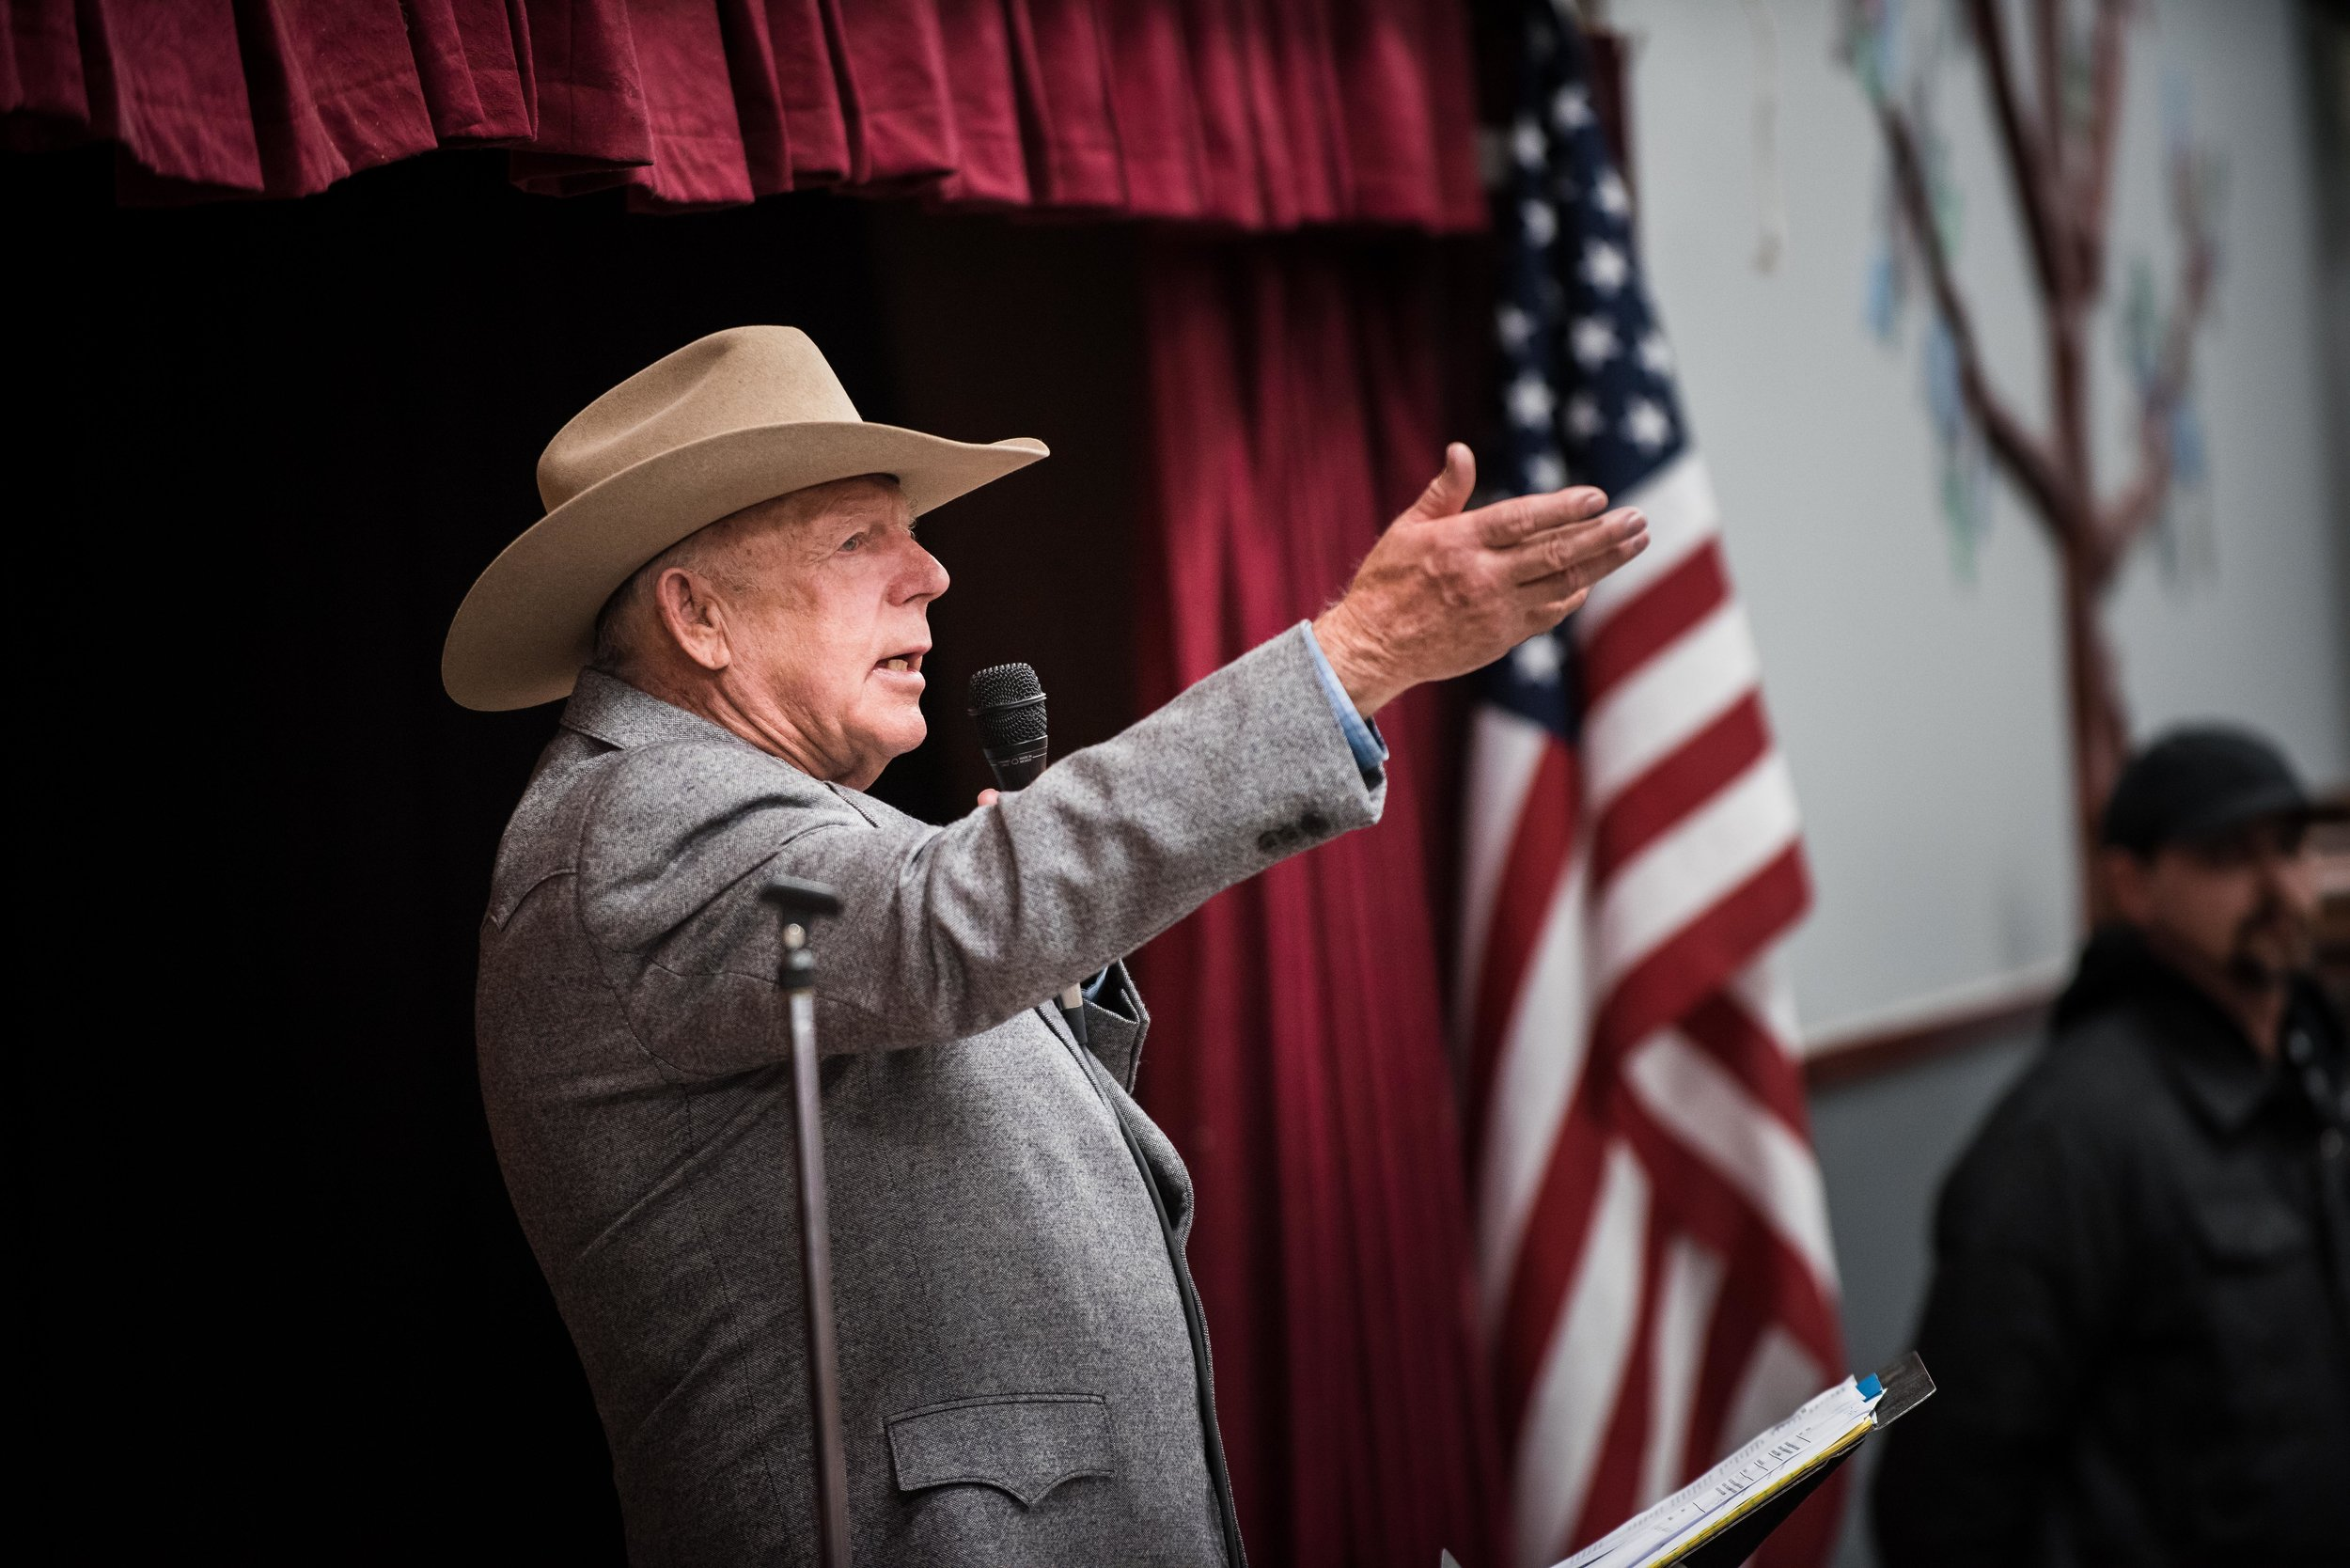 Cliven Bundy's first appearance after his trial is thrown out. ©Tony Bynum for High Country News